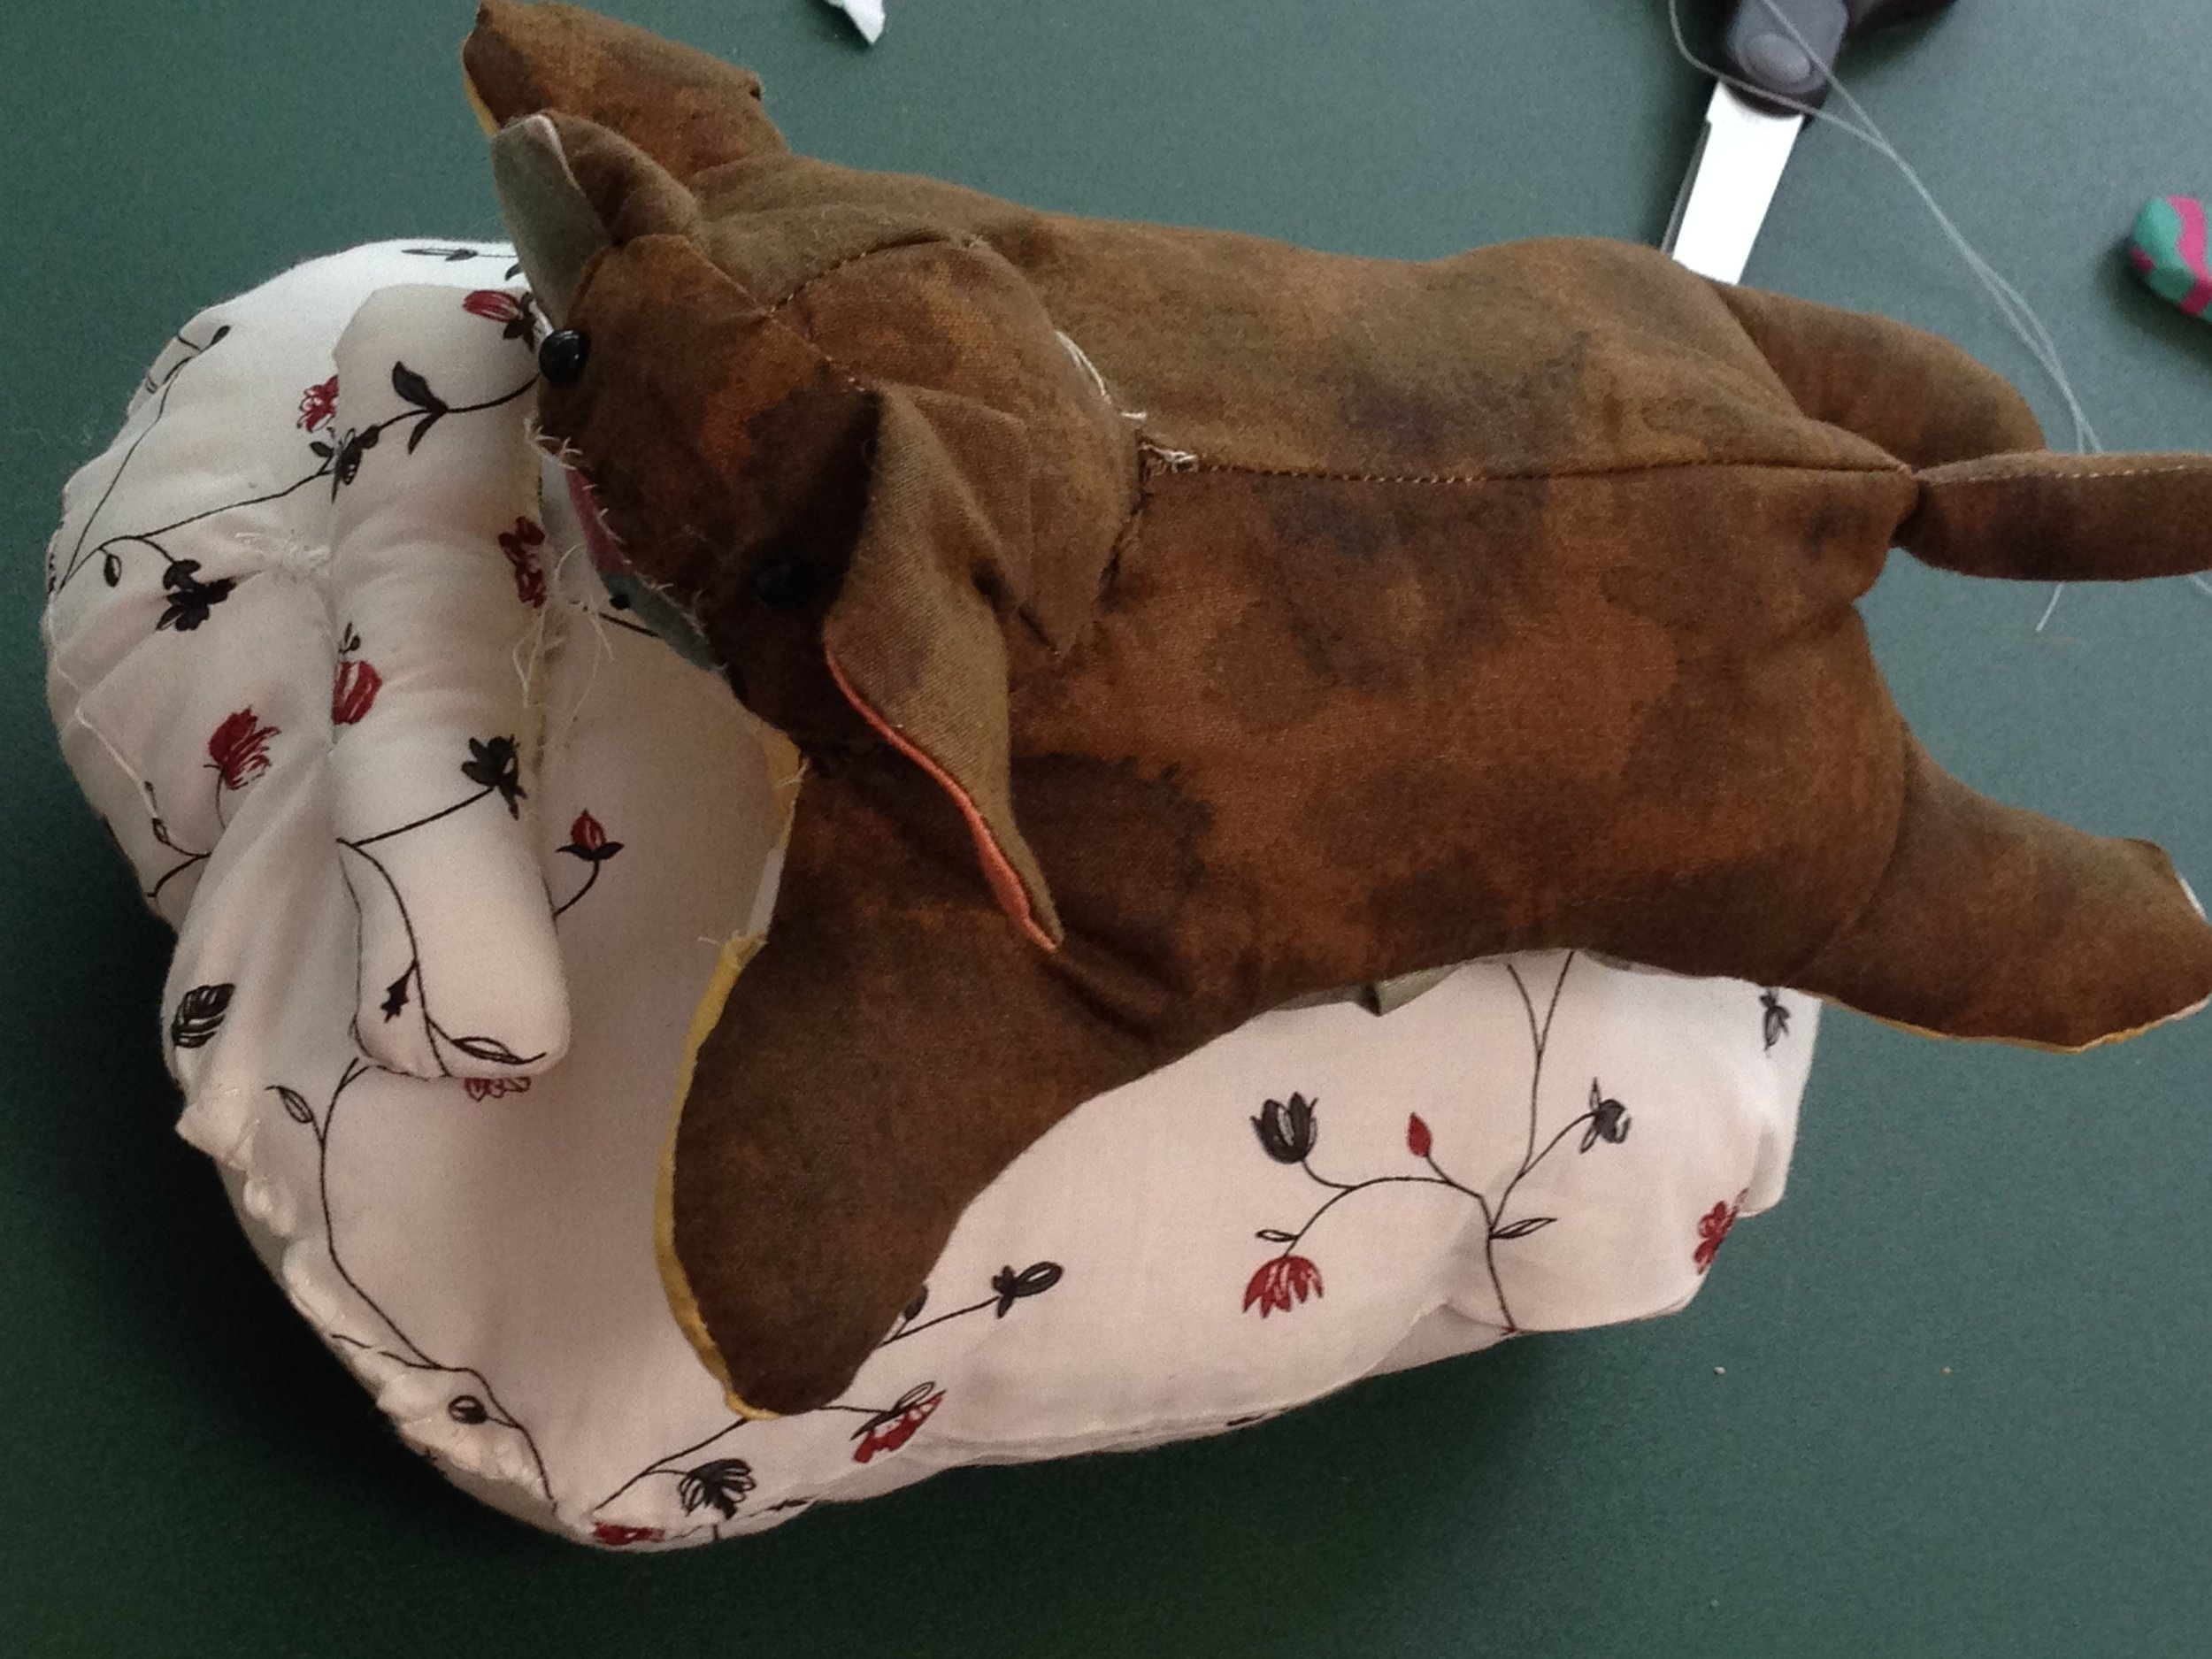 4th grader puppy bed with a pillow.